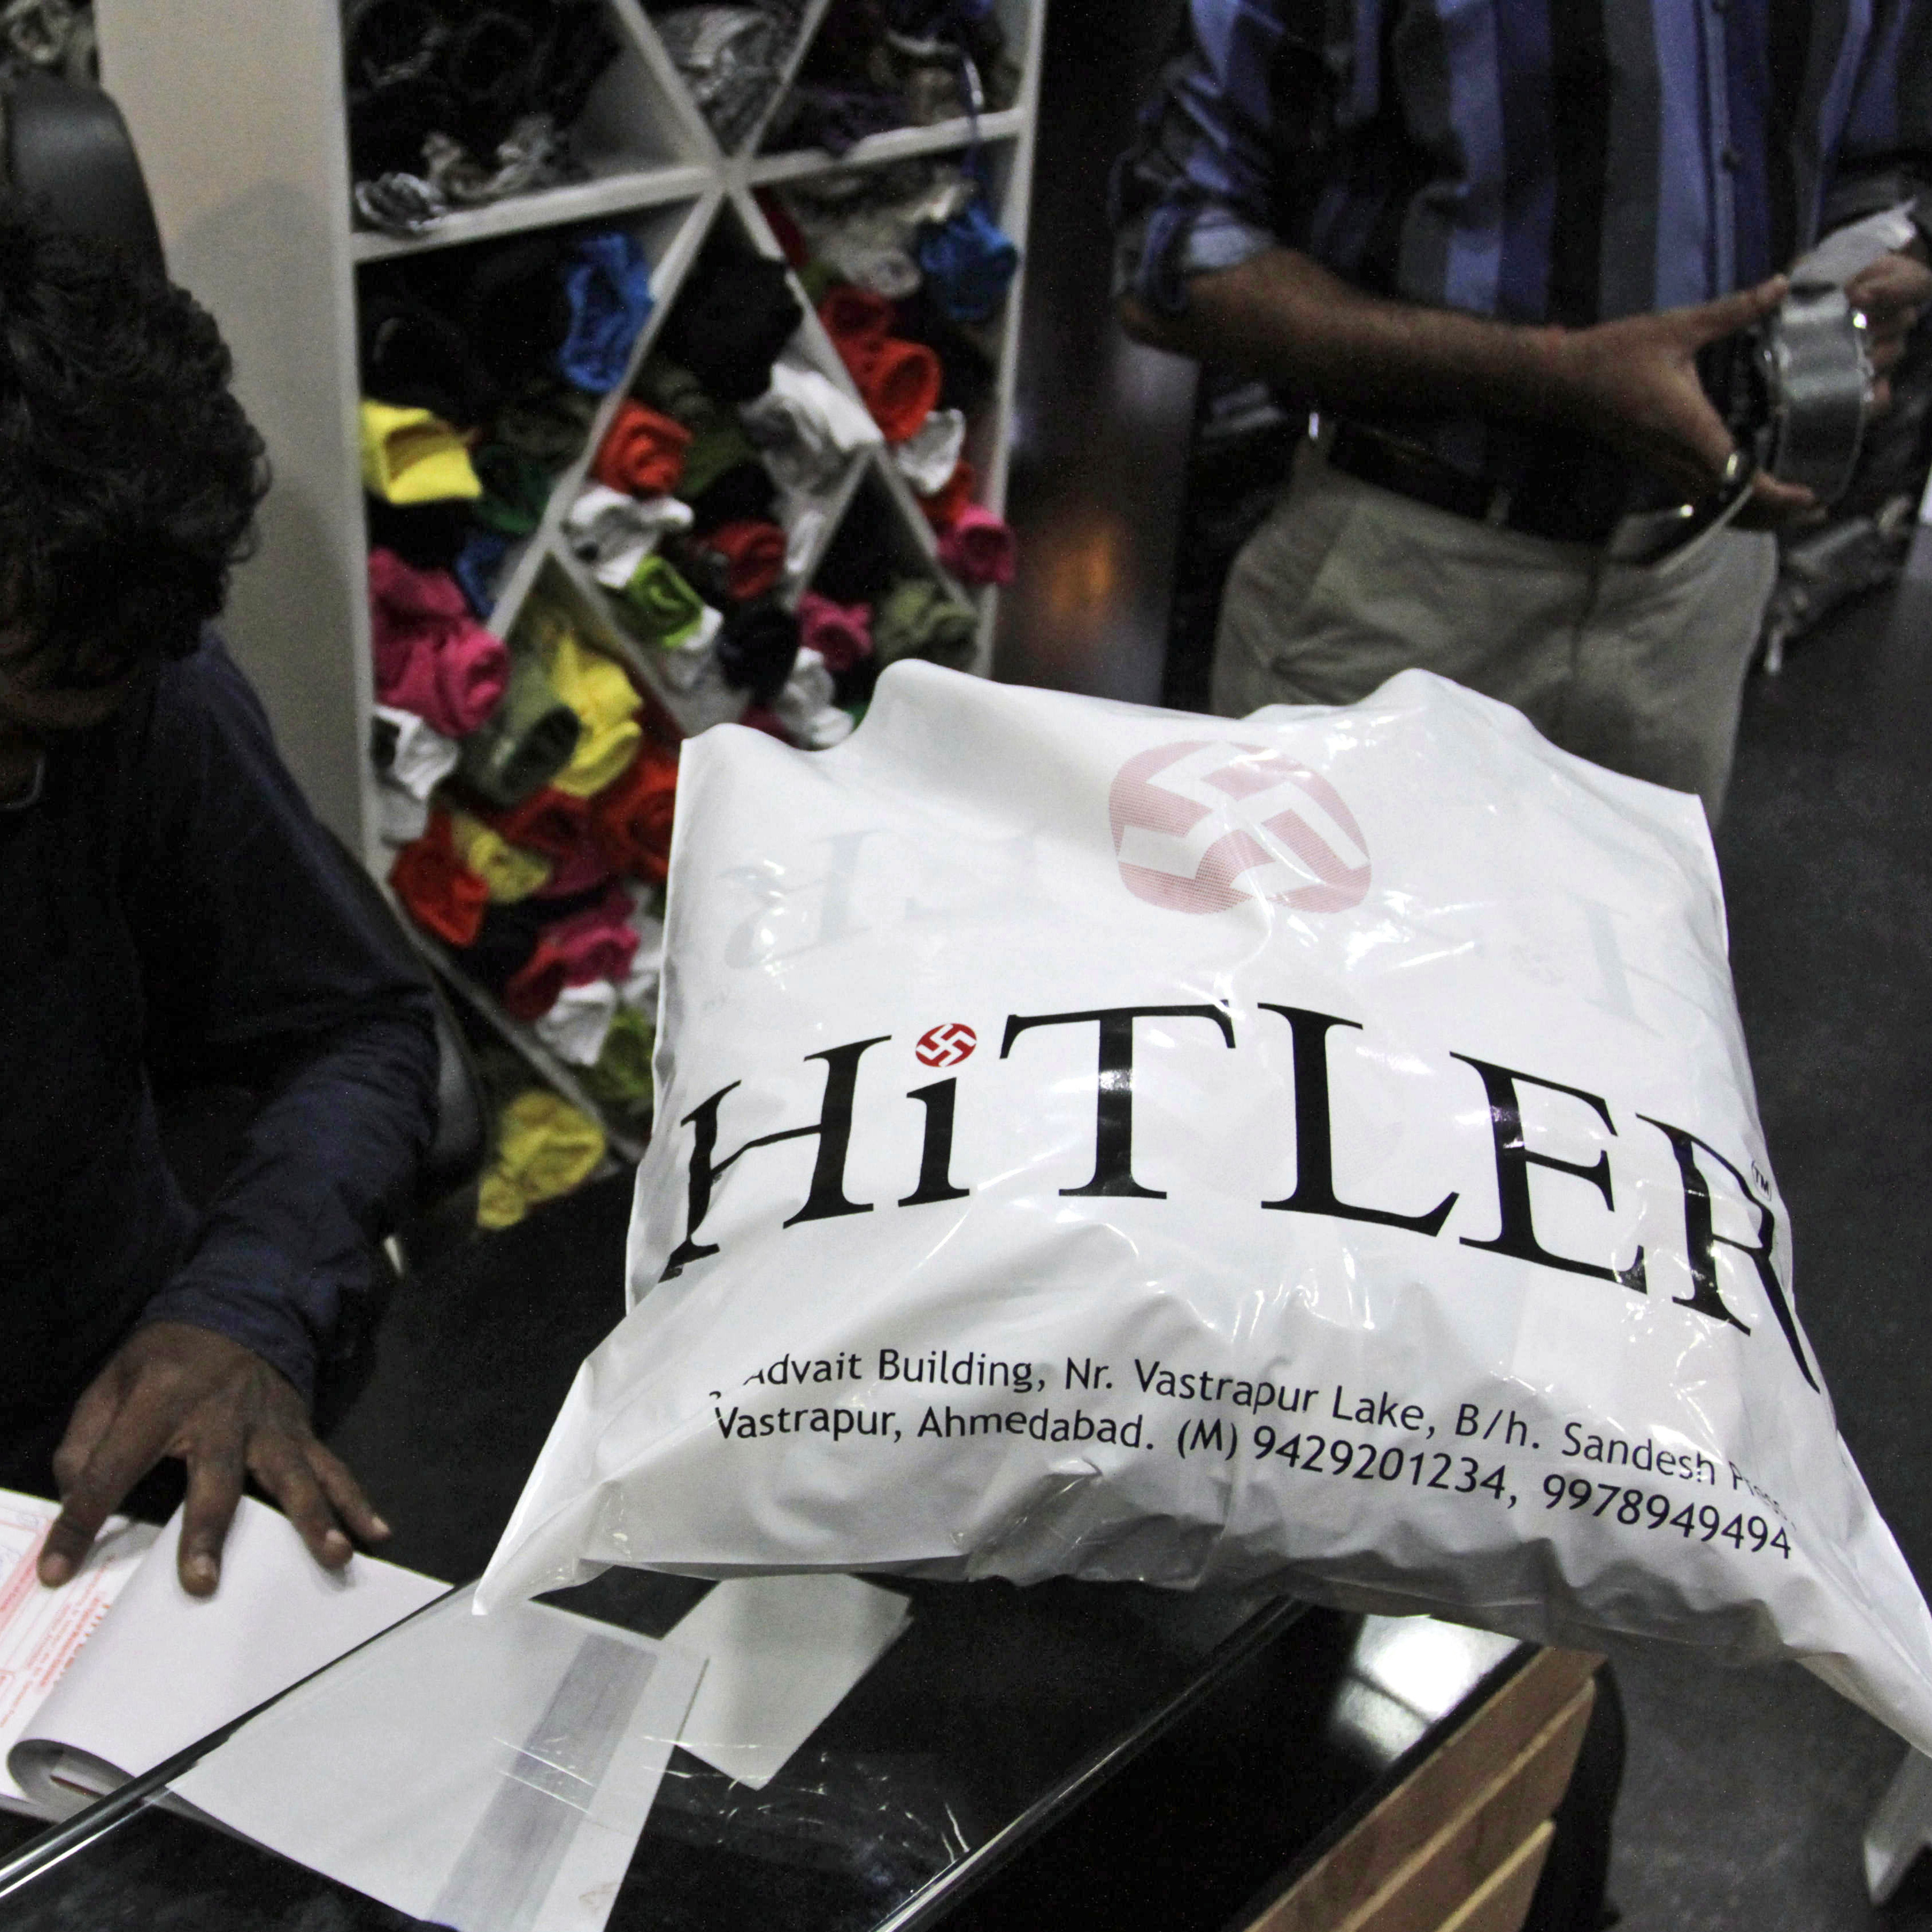 """We are popular because of the name,"" Hitler co-owner Rajesh Shah said. ""Our customers were not upset about the name."""